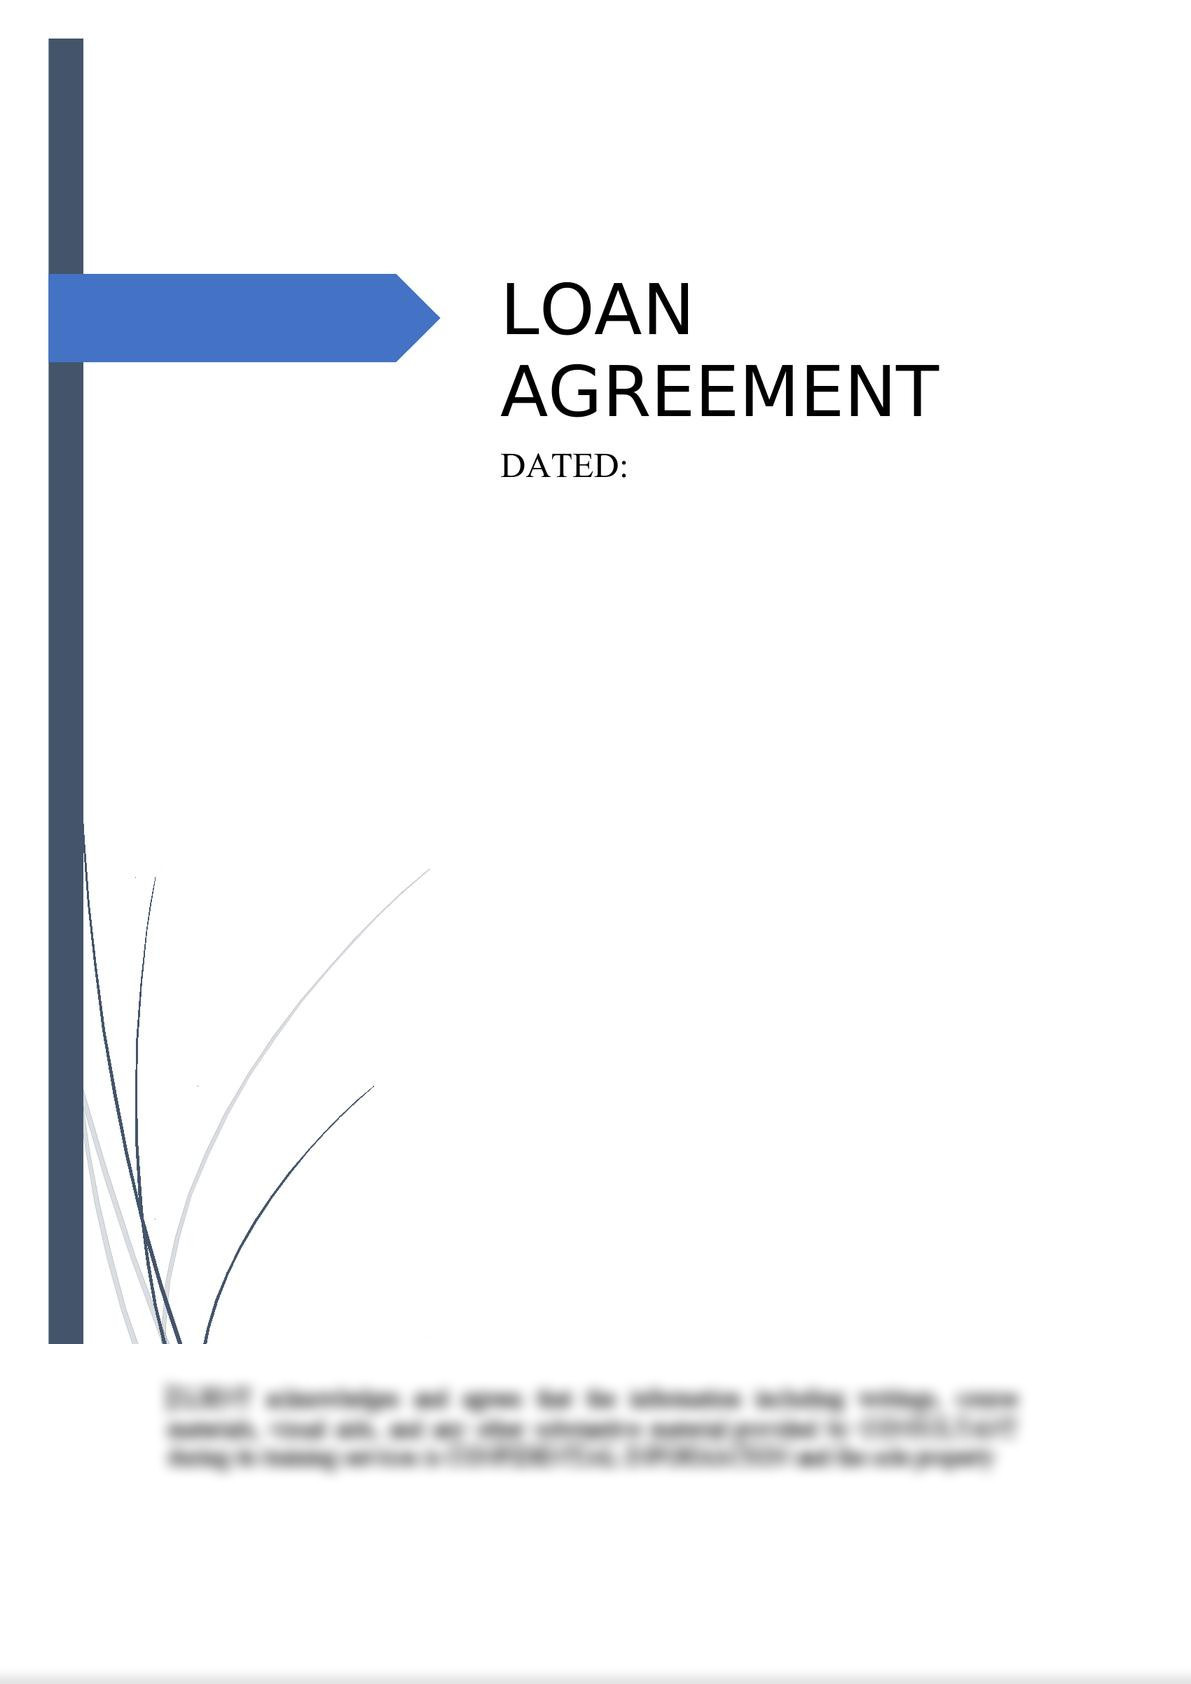 Loan Agreement (Secured)-0